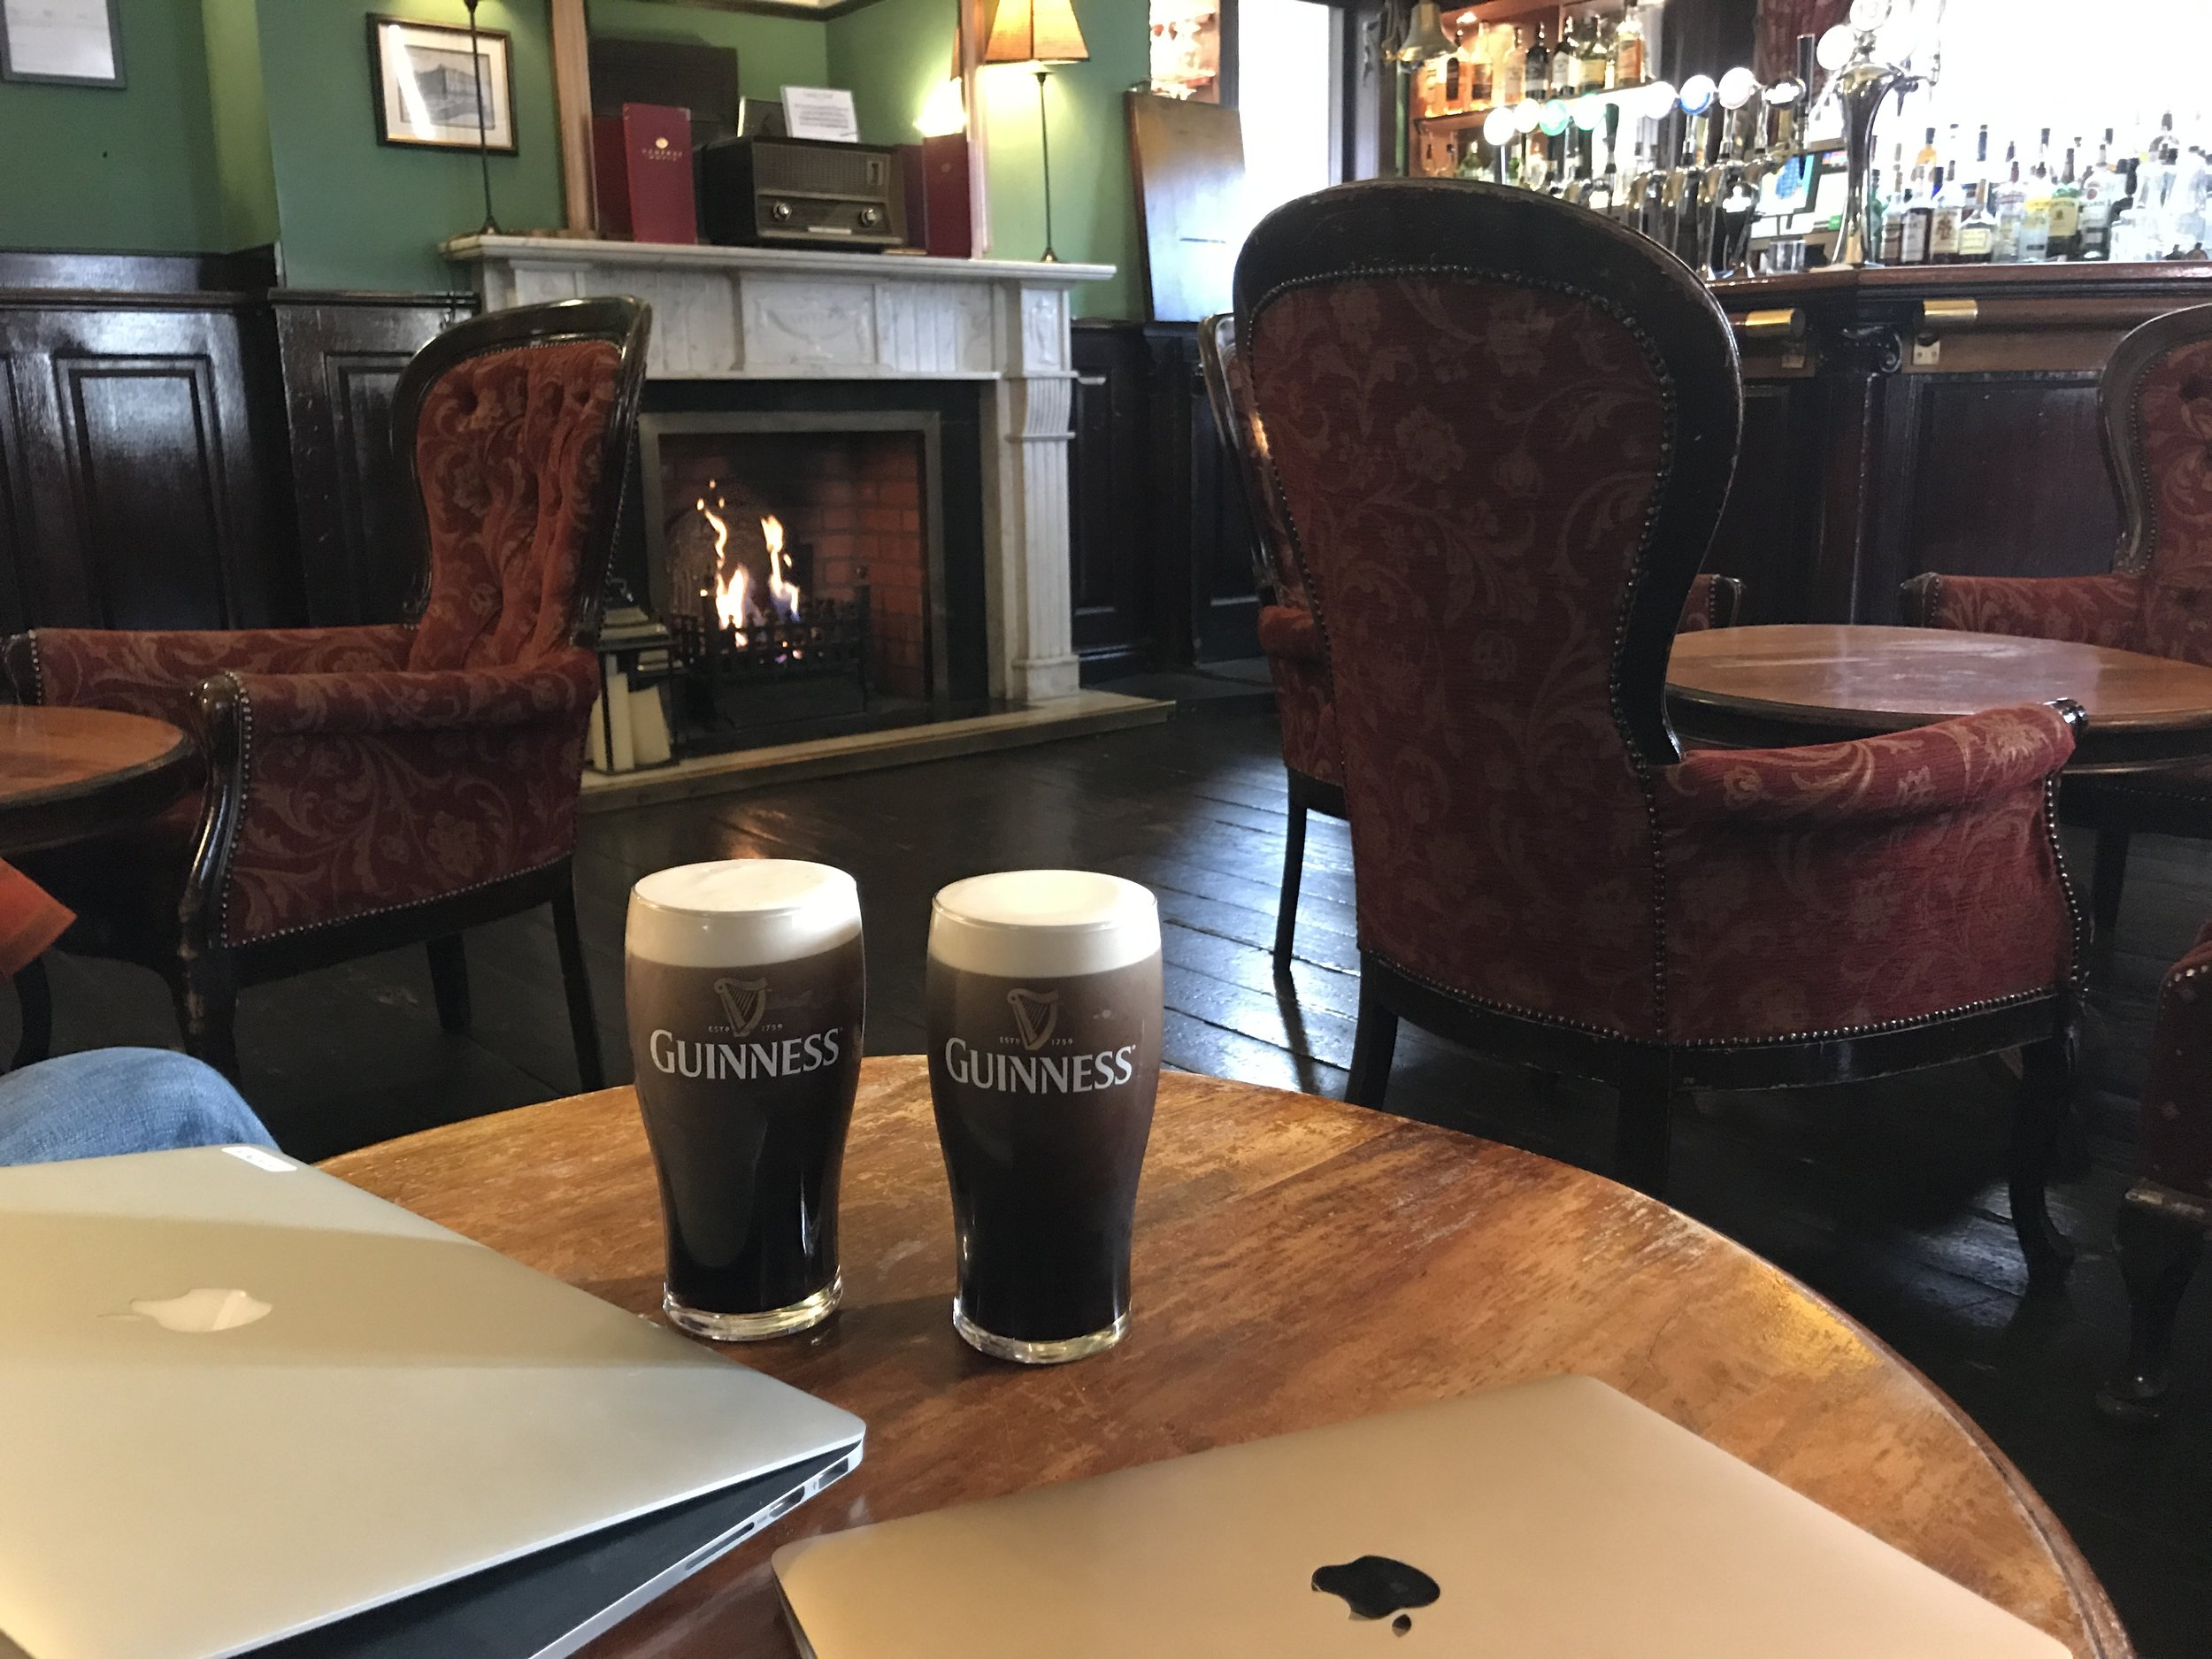 Mission Accomplished! Today's writing spot - The Library Bar